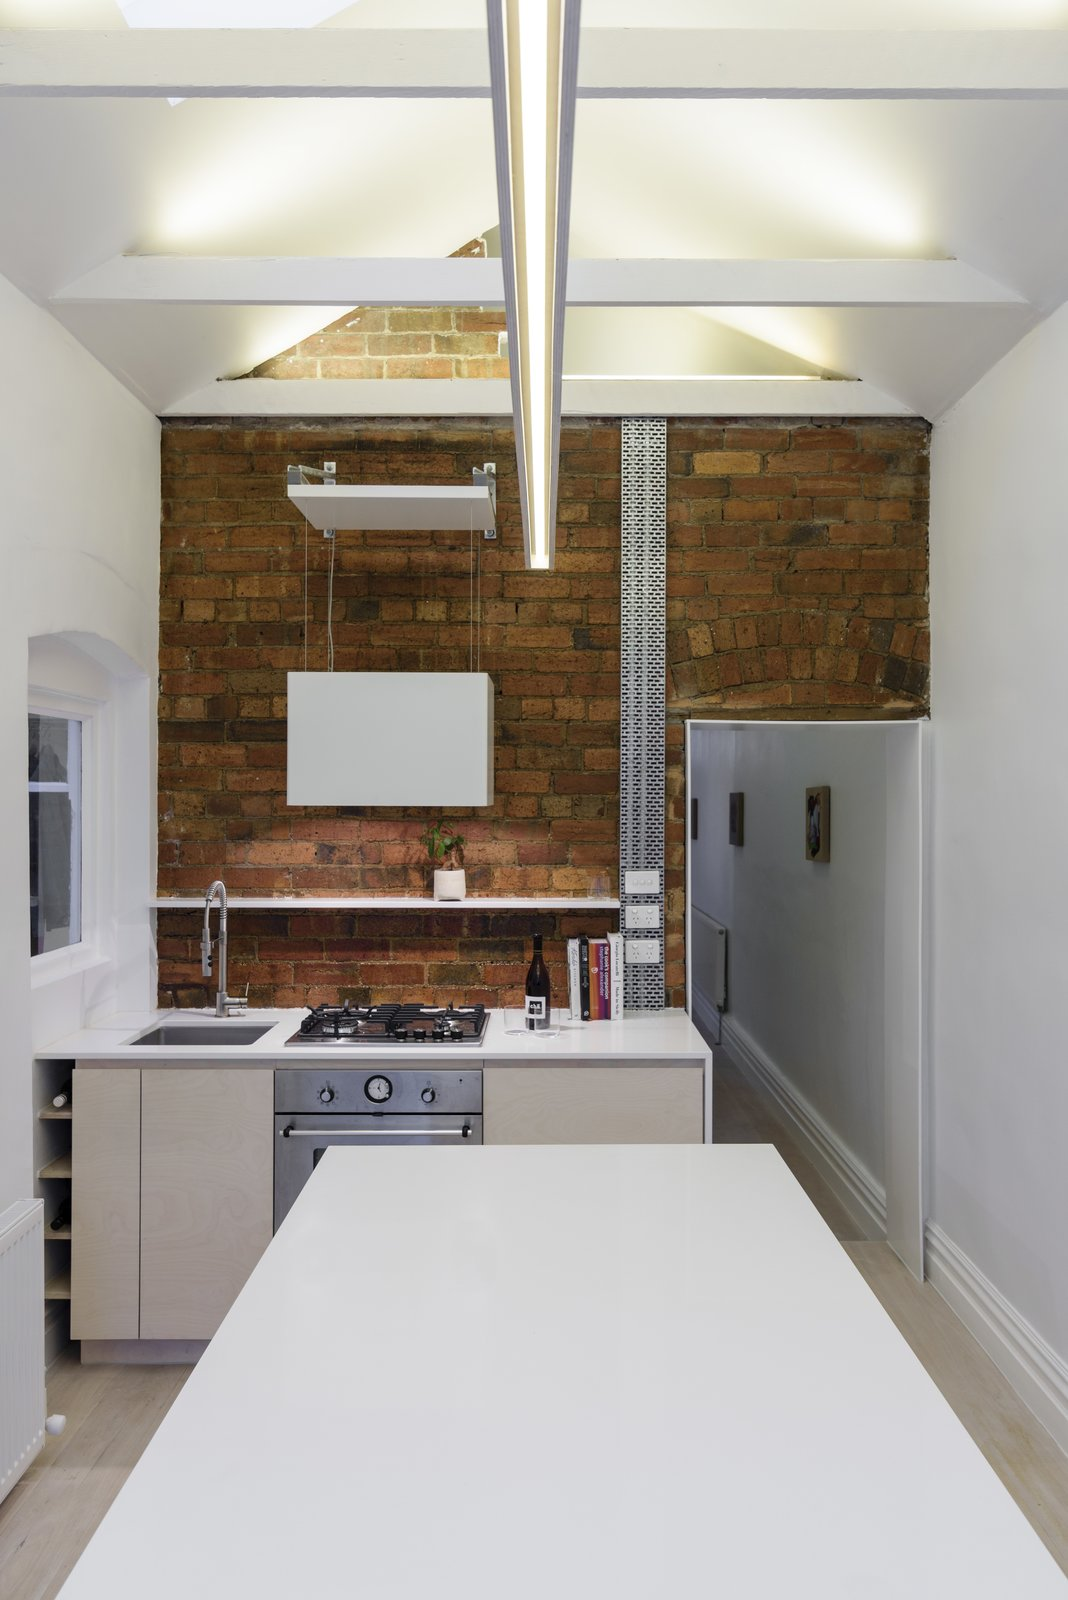 Kitchen (Night) Tagged: Kitchen, Engineered Quartz Counter, Wood Cabinet, Light Hardwood Floor, Ceiling Lighting, Pendant Lighting, Brick Backsplashe, Recessed Lighting, Accent Lighting, Wall Oven, Cooktops, Range, Range Hood, and Undermount Sink. Curtain Cottage by Otto Henkell